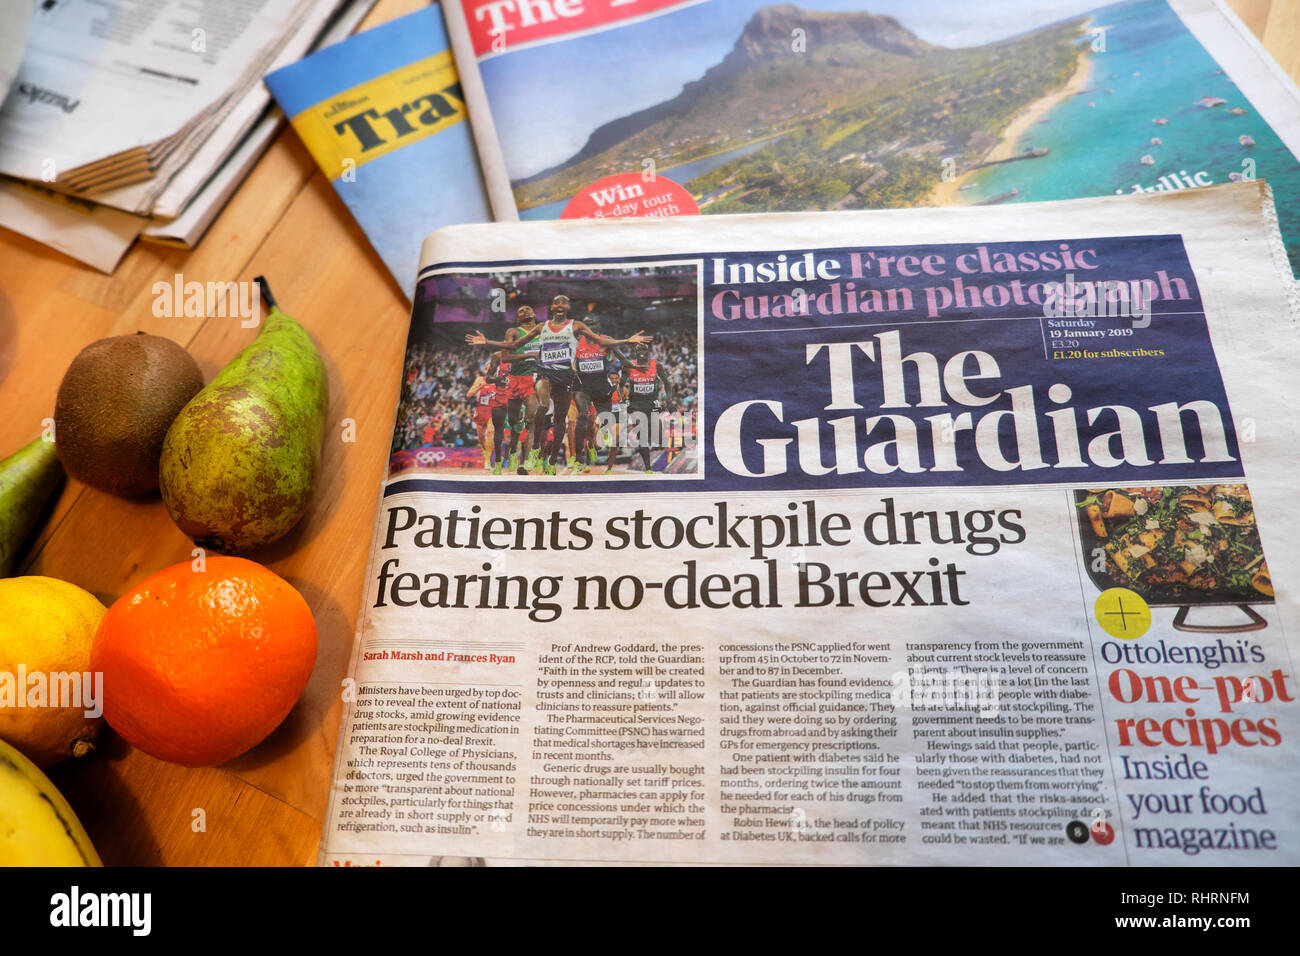 'Patients stockpile drugs fearing no-deal Brexit' Guardian newspaper front page headline & fruit on kitchen table in London England UK 19 January 2019 - Stock Image